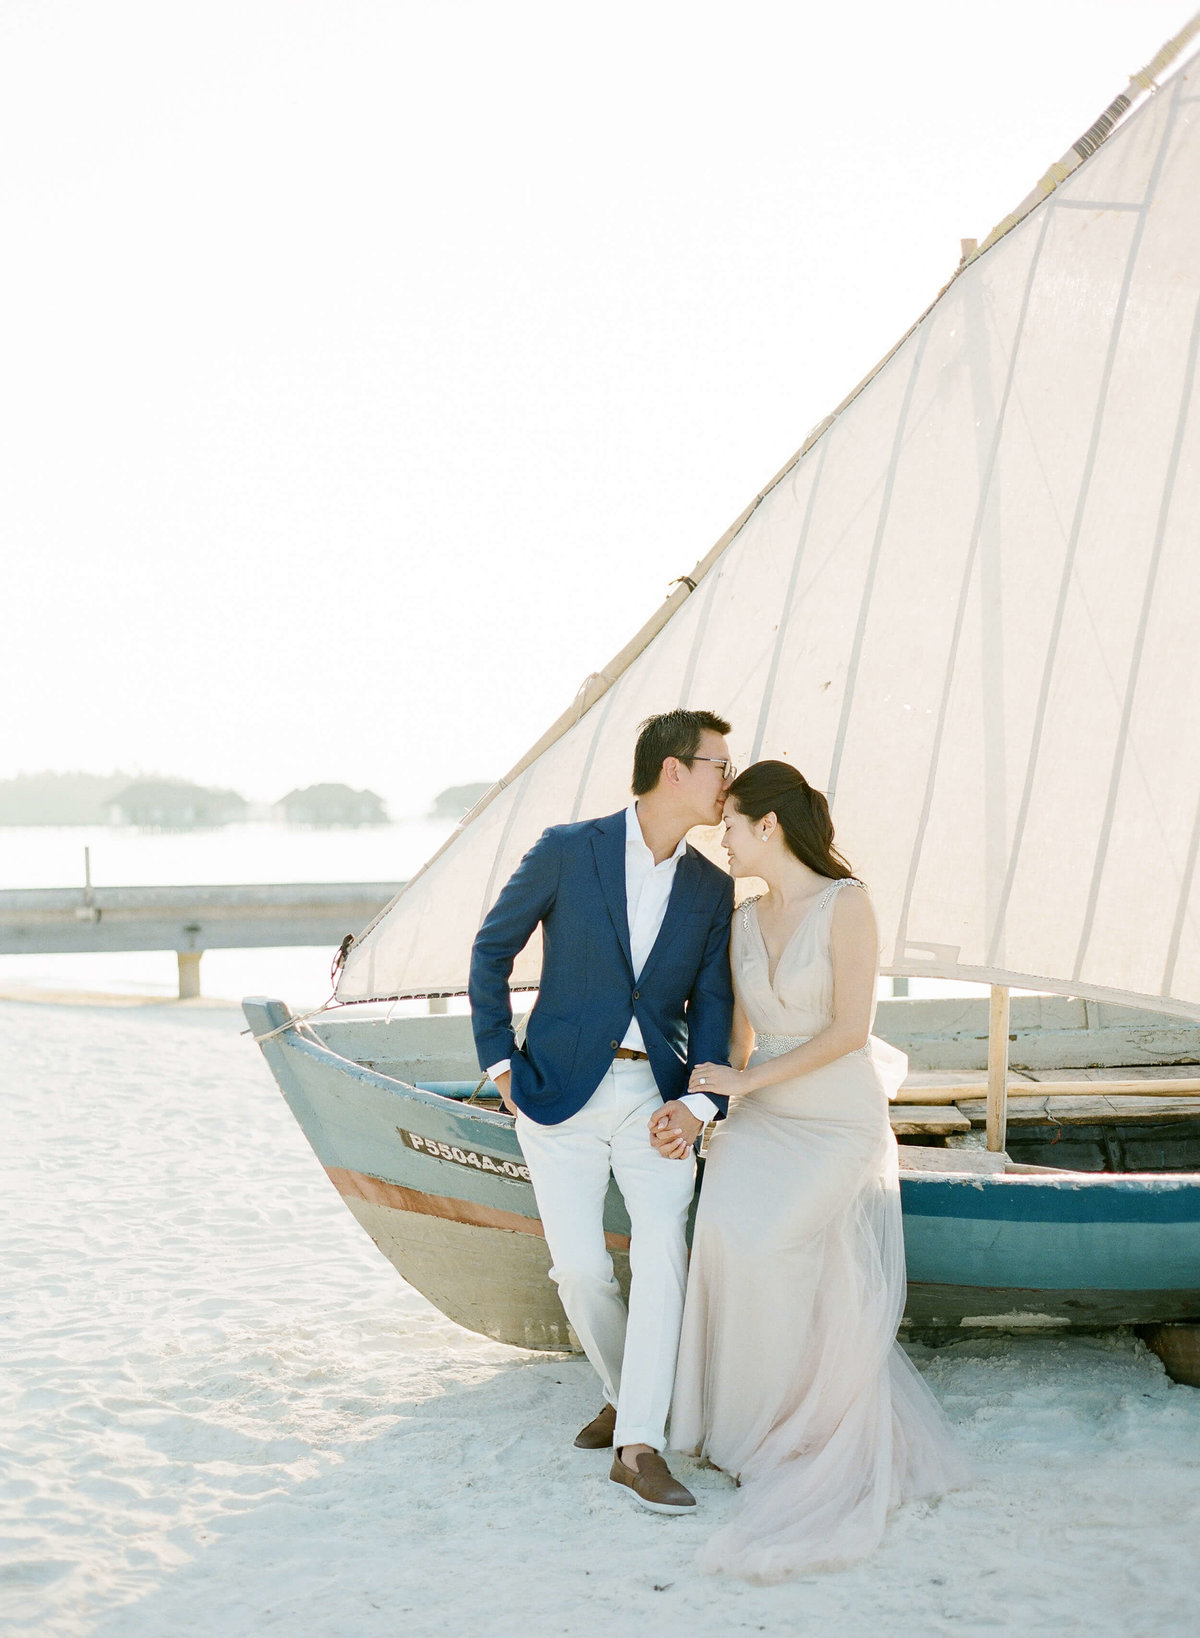 30-KTMerry-destinationwedding-Maldives-boat